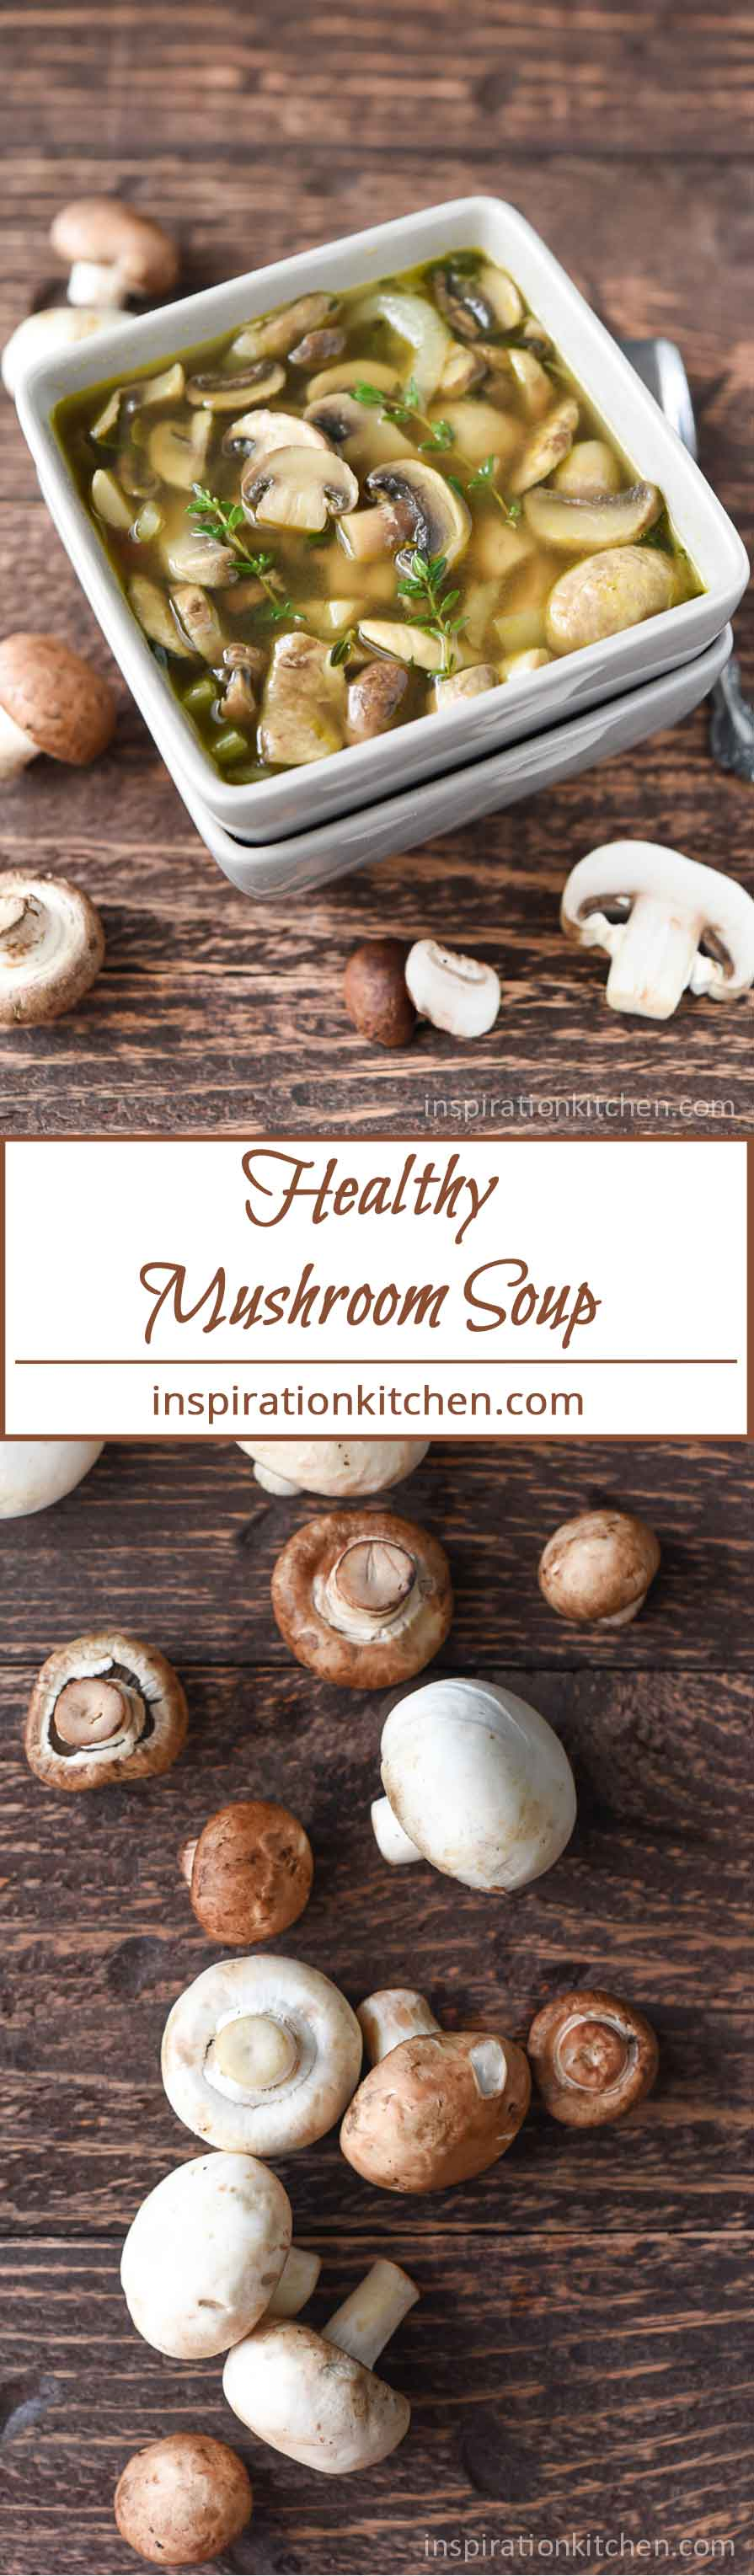 Healthy Mushroom Soup | Inspiration Kitchen